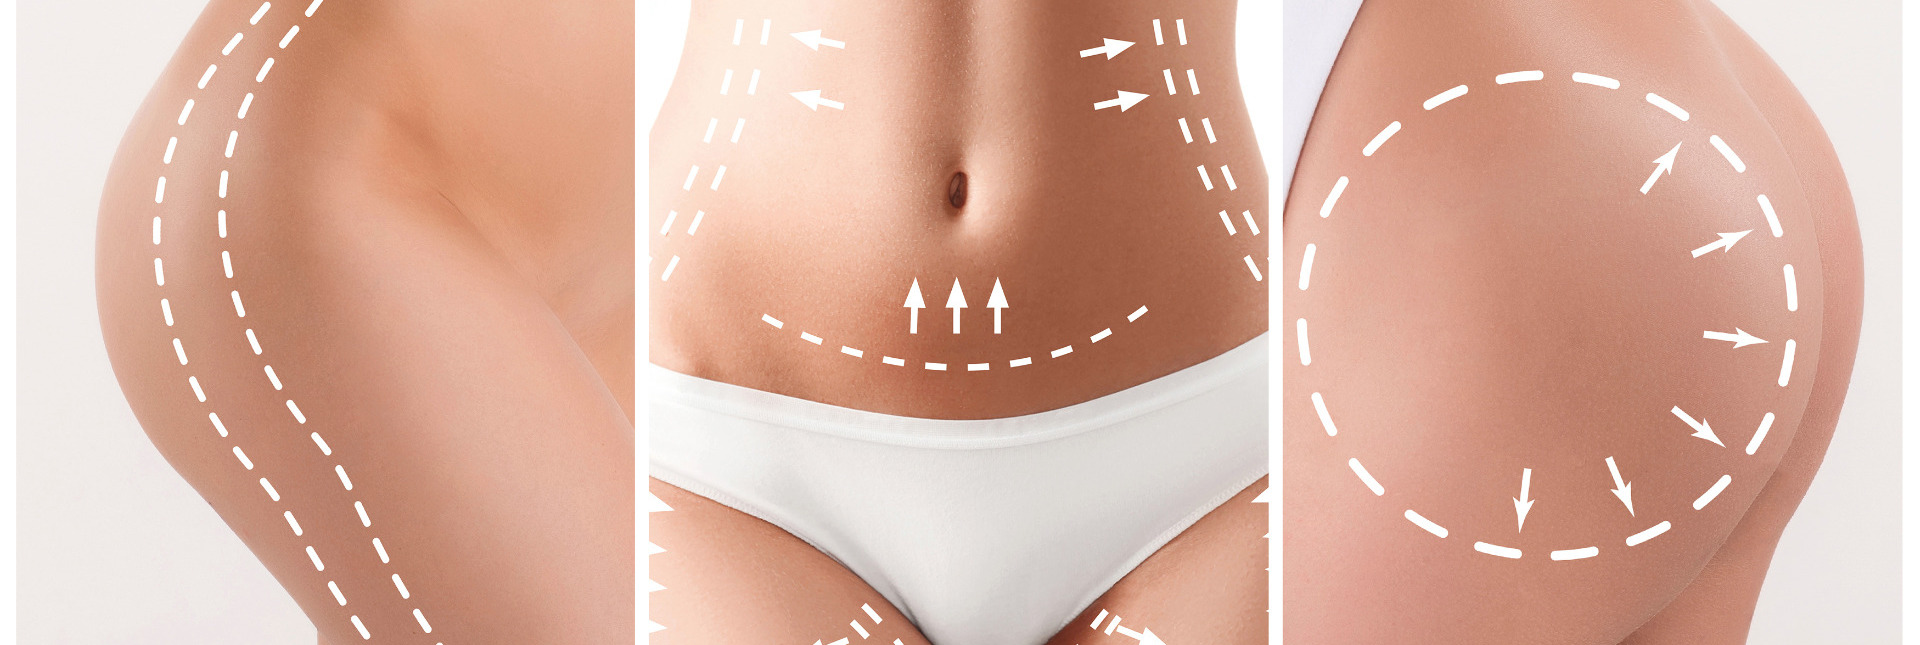 Enhance Cosmetic Surgery - Body